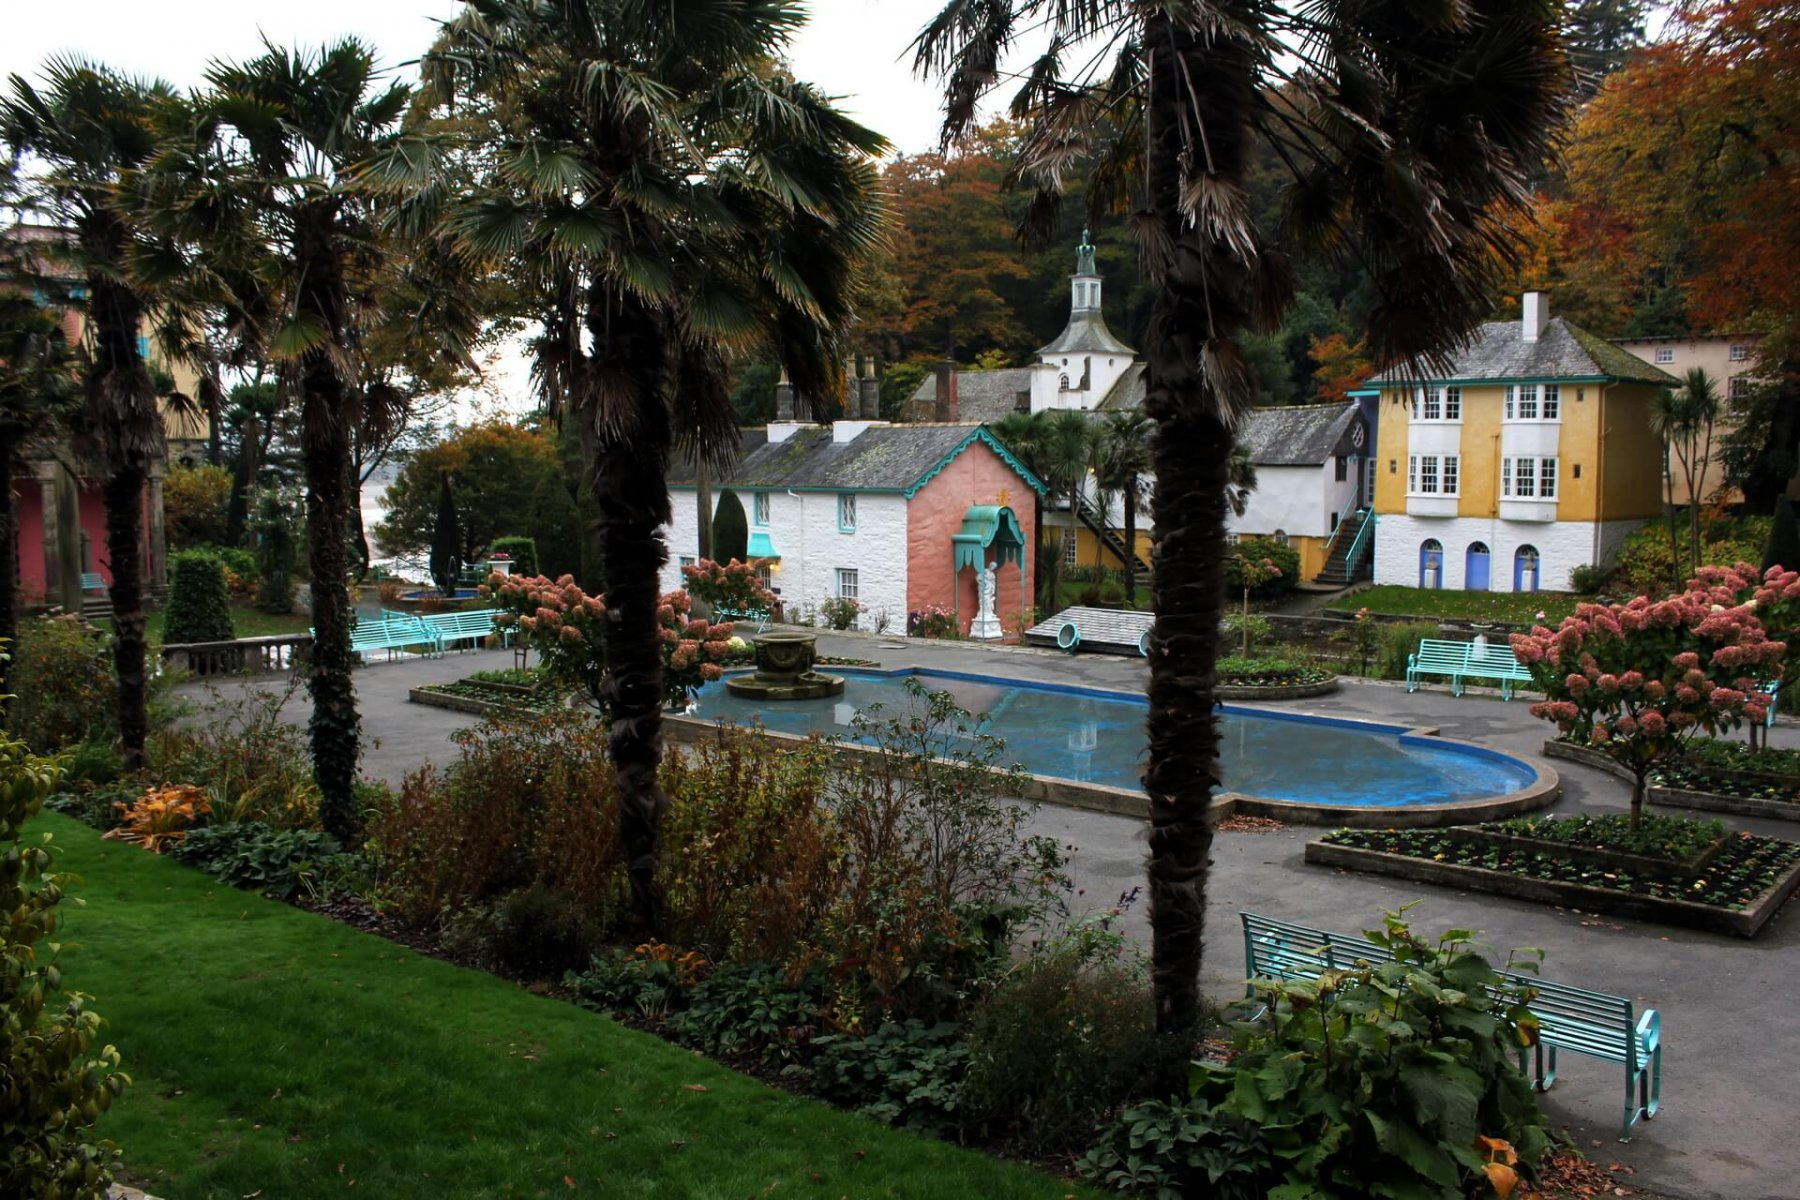 portmeirion-village-water-feature